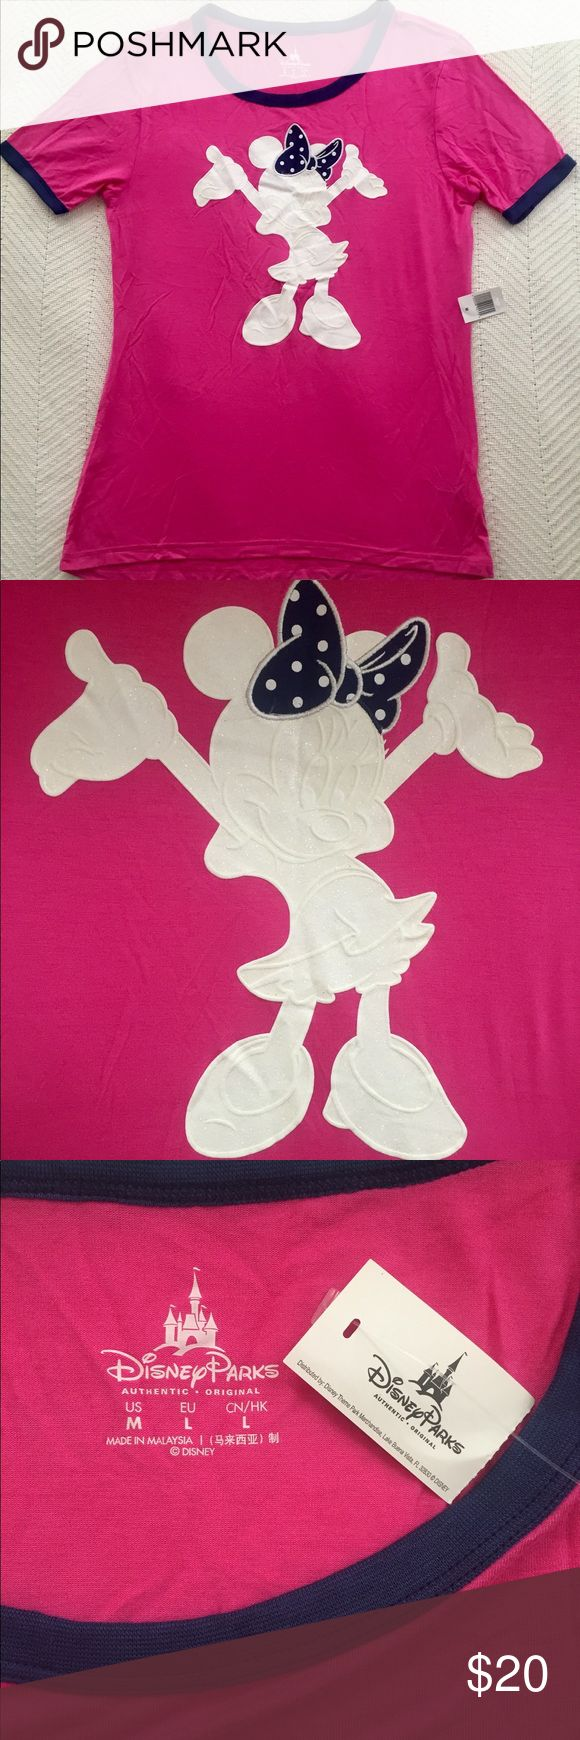 Pink Minnie T-Shirt NWT! Pink Minnie T-shirt! Minnie is covered in white sparkles with a cute polka dot bow. Fits like a women's medium. Never worn, received as a gift. Disney Tops Tees - Short Sleeve